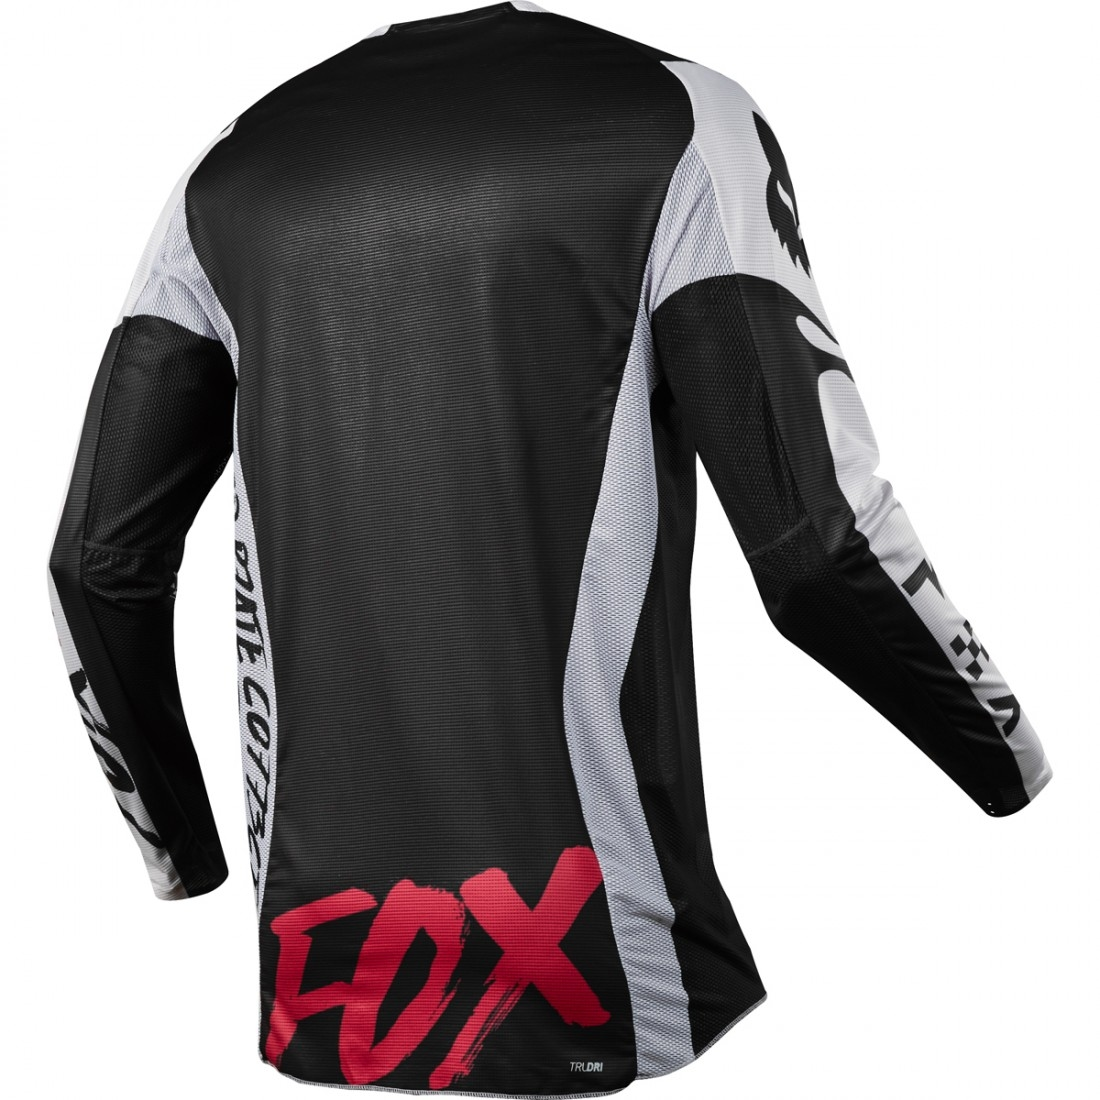 06ad9facd FOX Flexair 2018 Rodka LE Light   Pastel Grey Jersey · Motocard